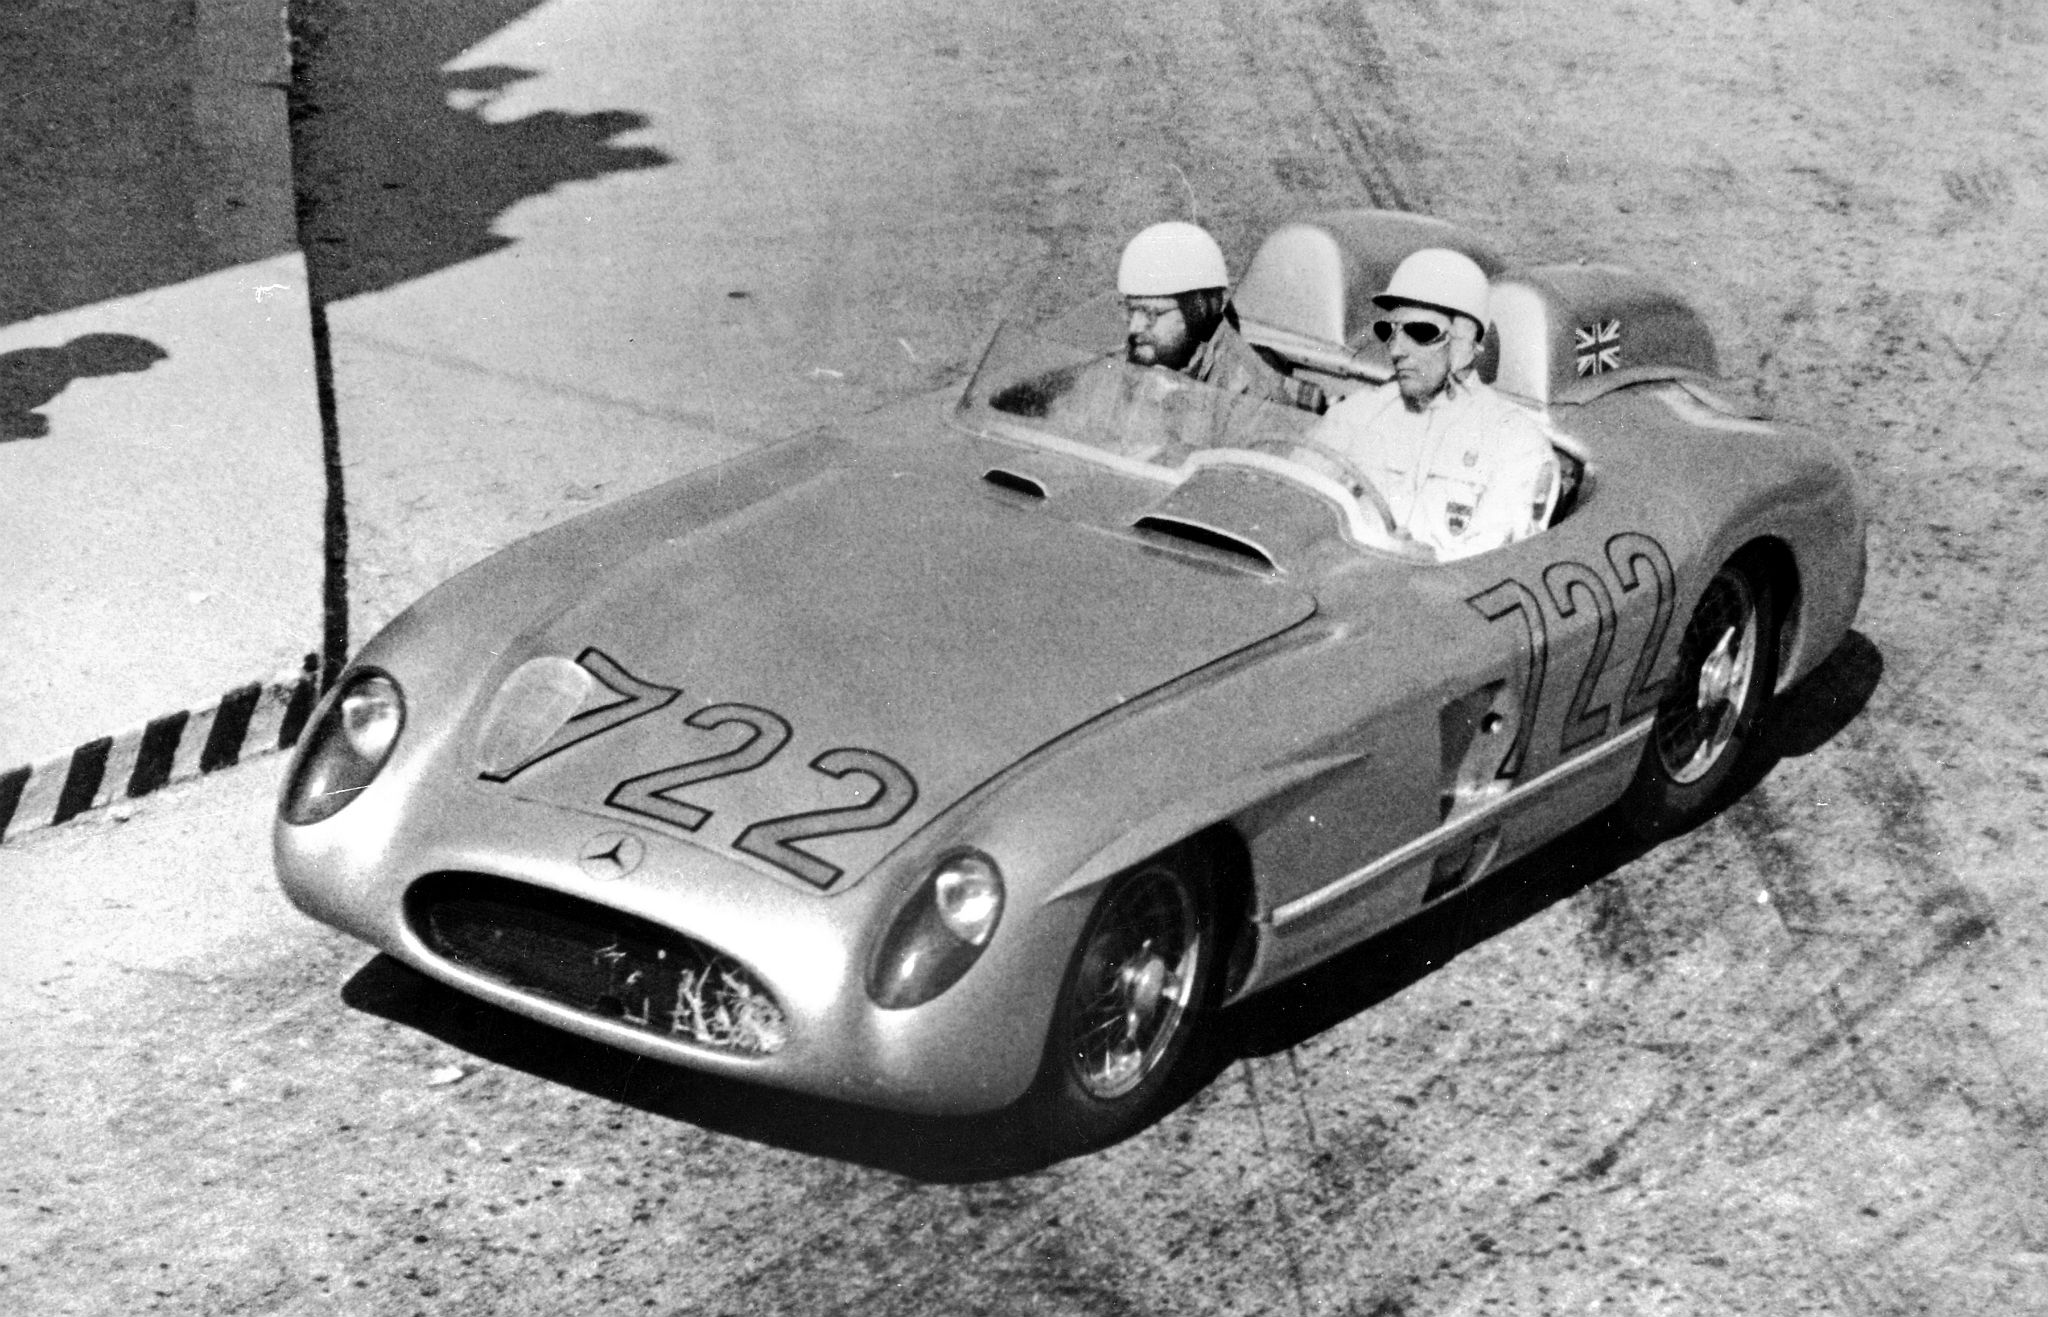 1955 Mercedes-Benz SLR - Stirling Moss - Mille Miglia